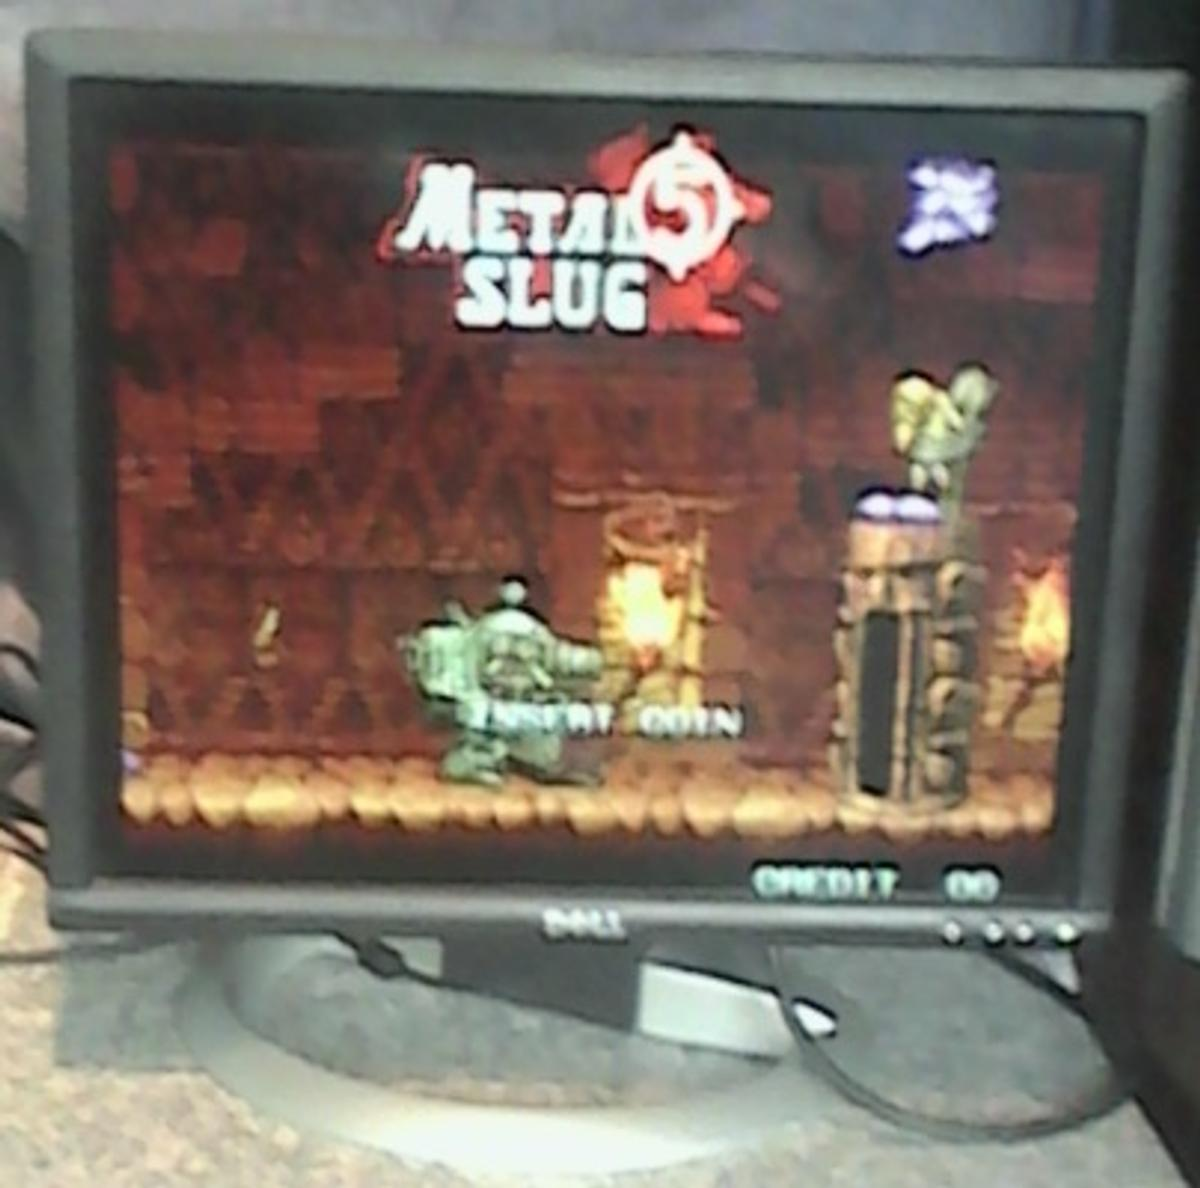 Retro Games PC, Maximus Arcade (hyperspin) in CW11 Smallwood for